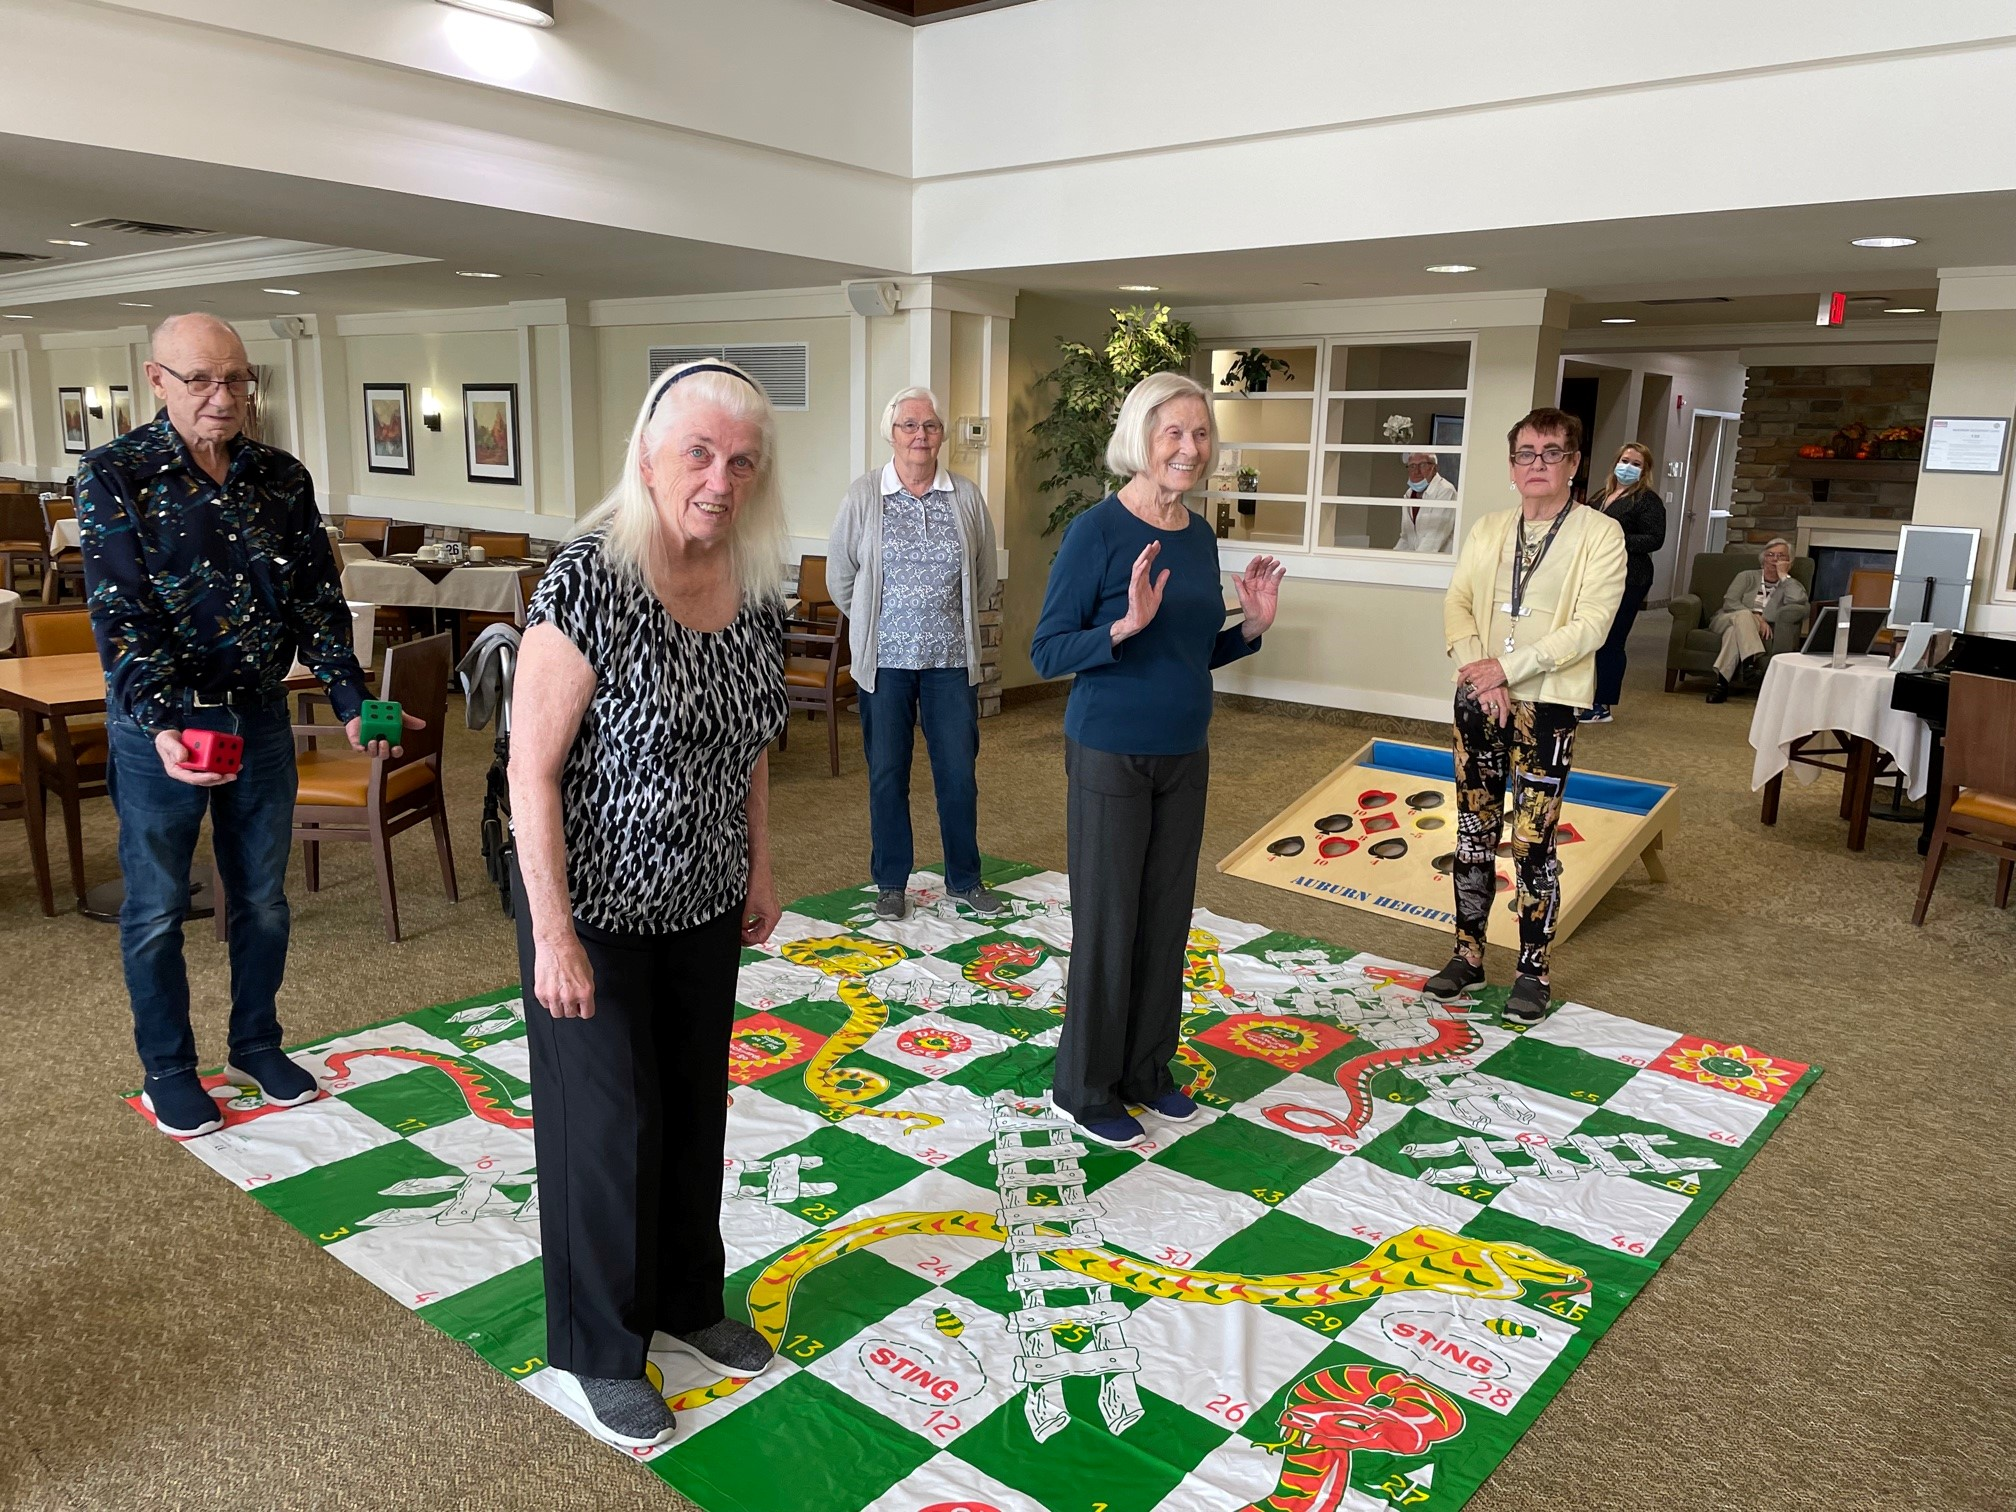 Group of people with grey hair playing a giant game of snakes and ladders